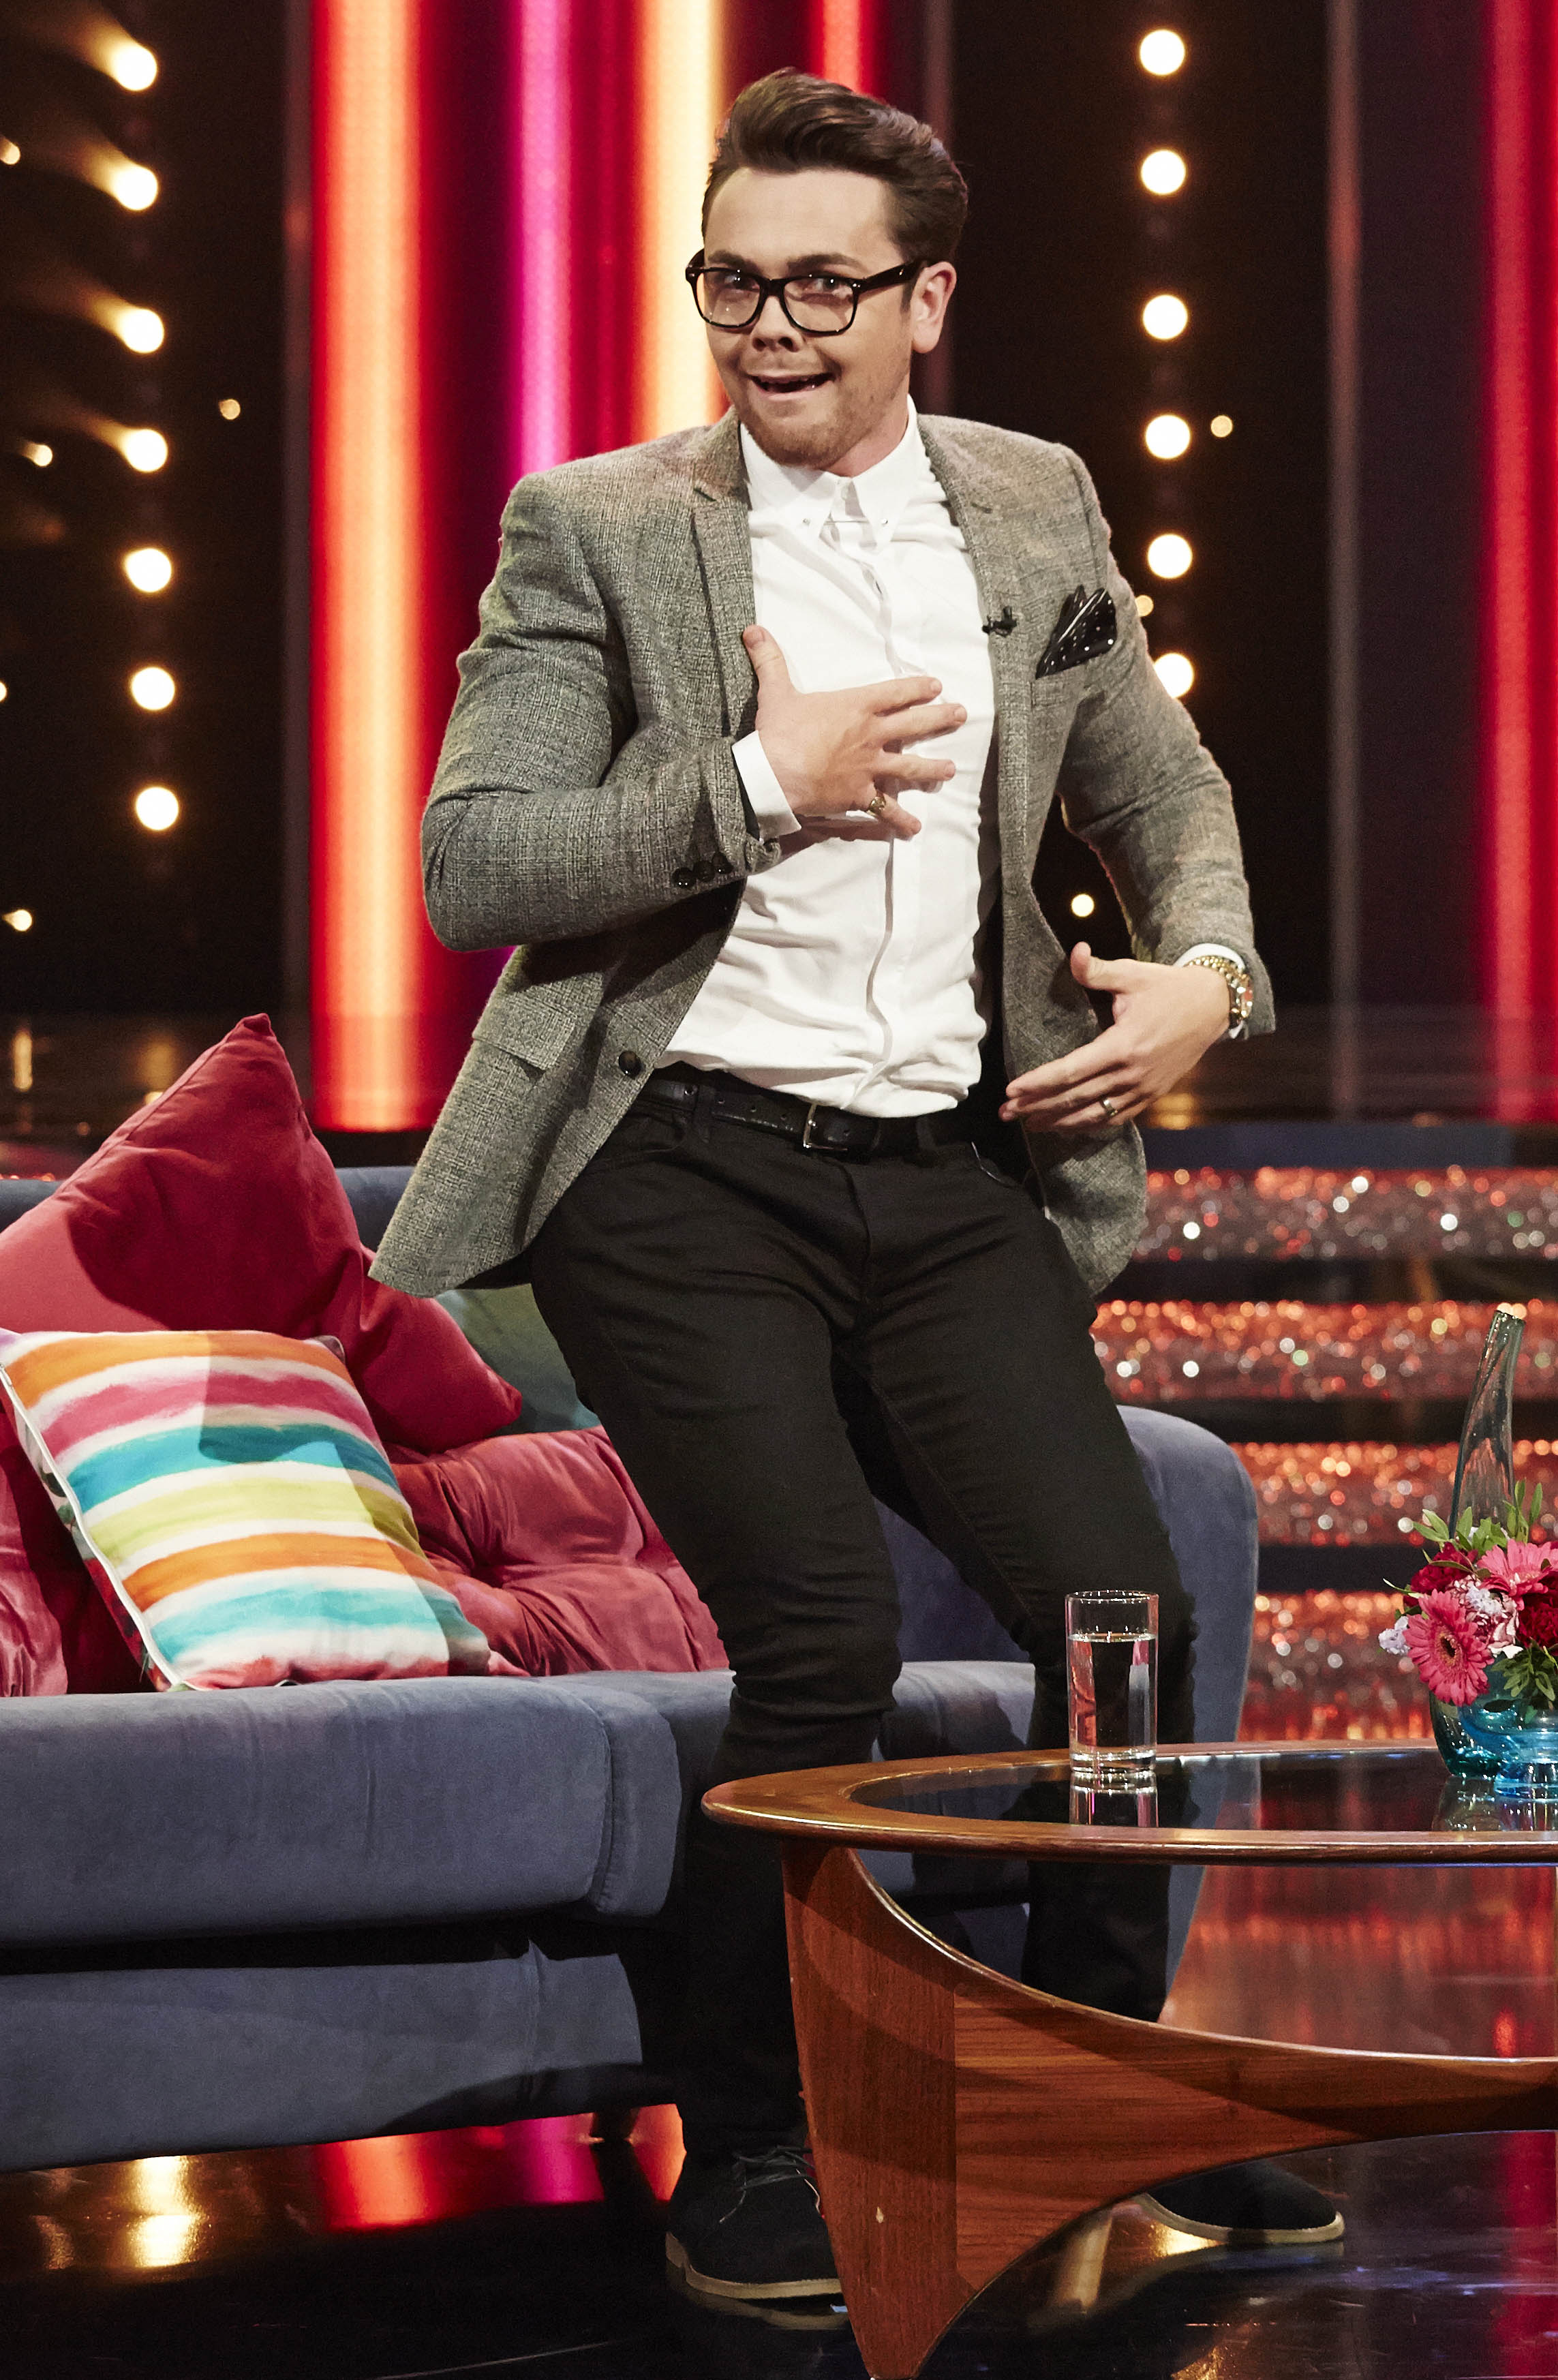 Jack-of-all-trades Ray Quinn goes through to Get Your Act Together live final despite being heckled on Twitter